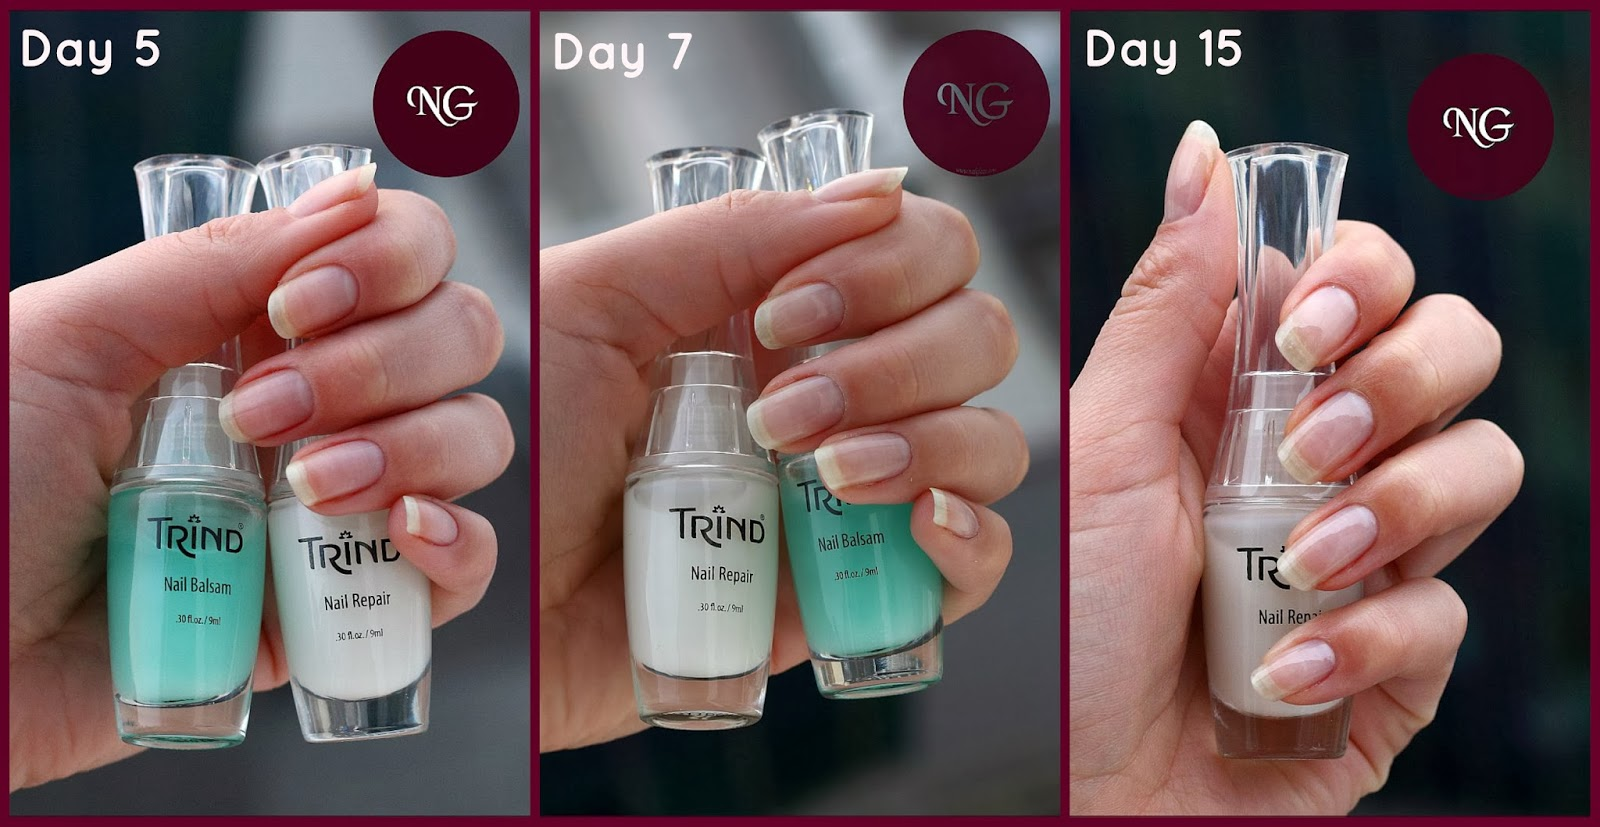 Nailglaze Trind Natural Nail Care After 2 Weeks Of Use